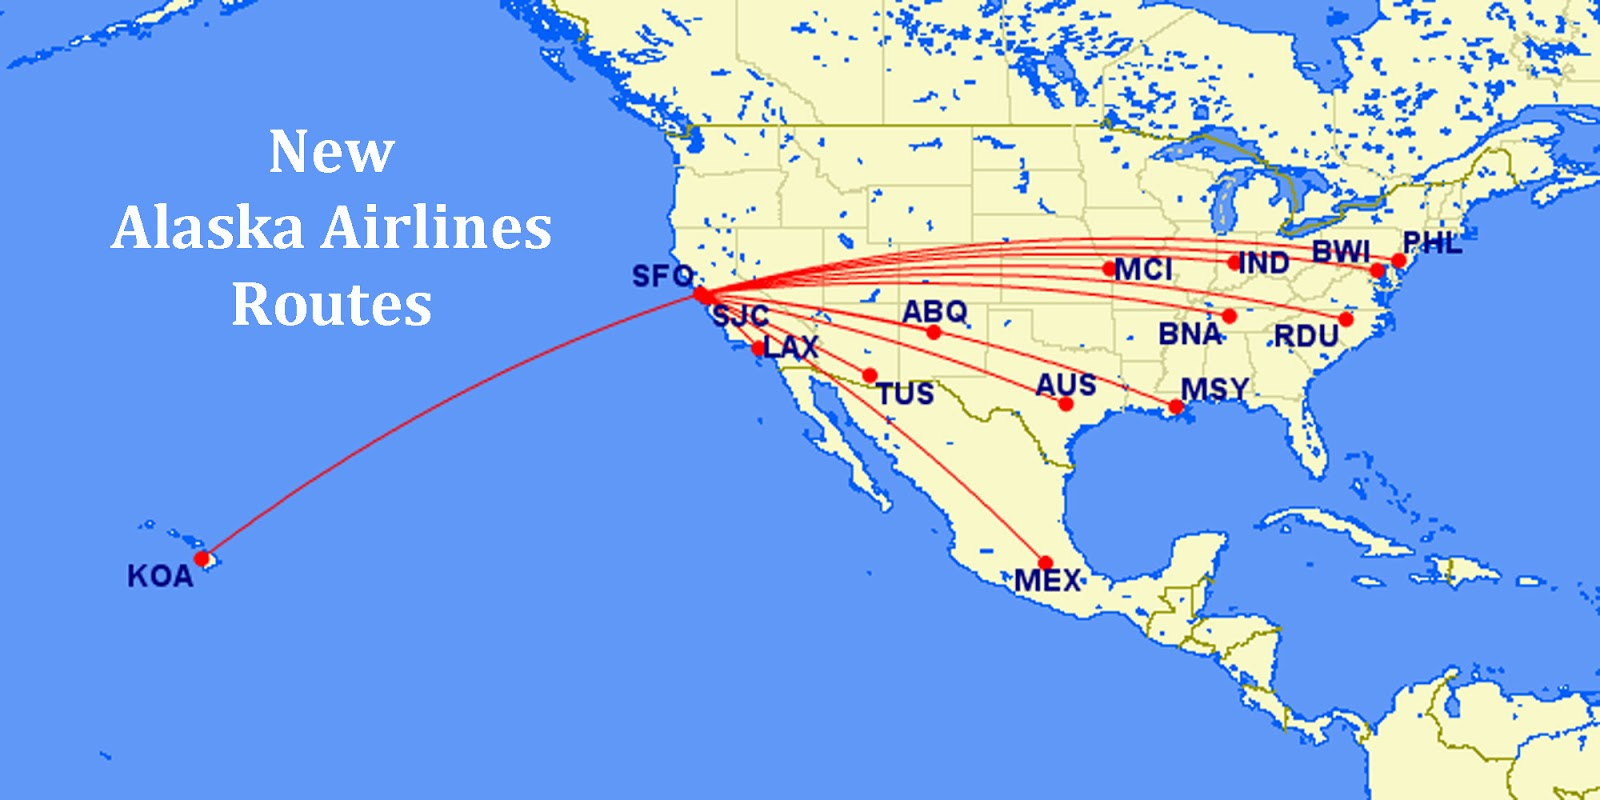 alaska airlines proposed new routes from the san francisco bay area click image to enlarge